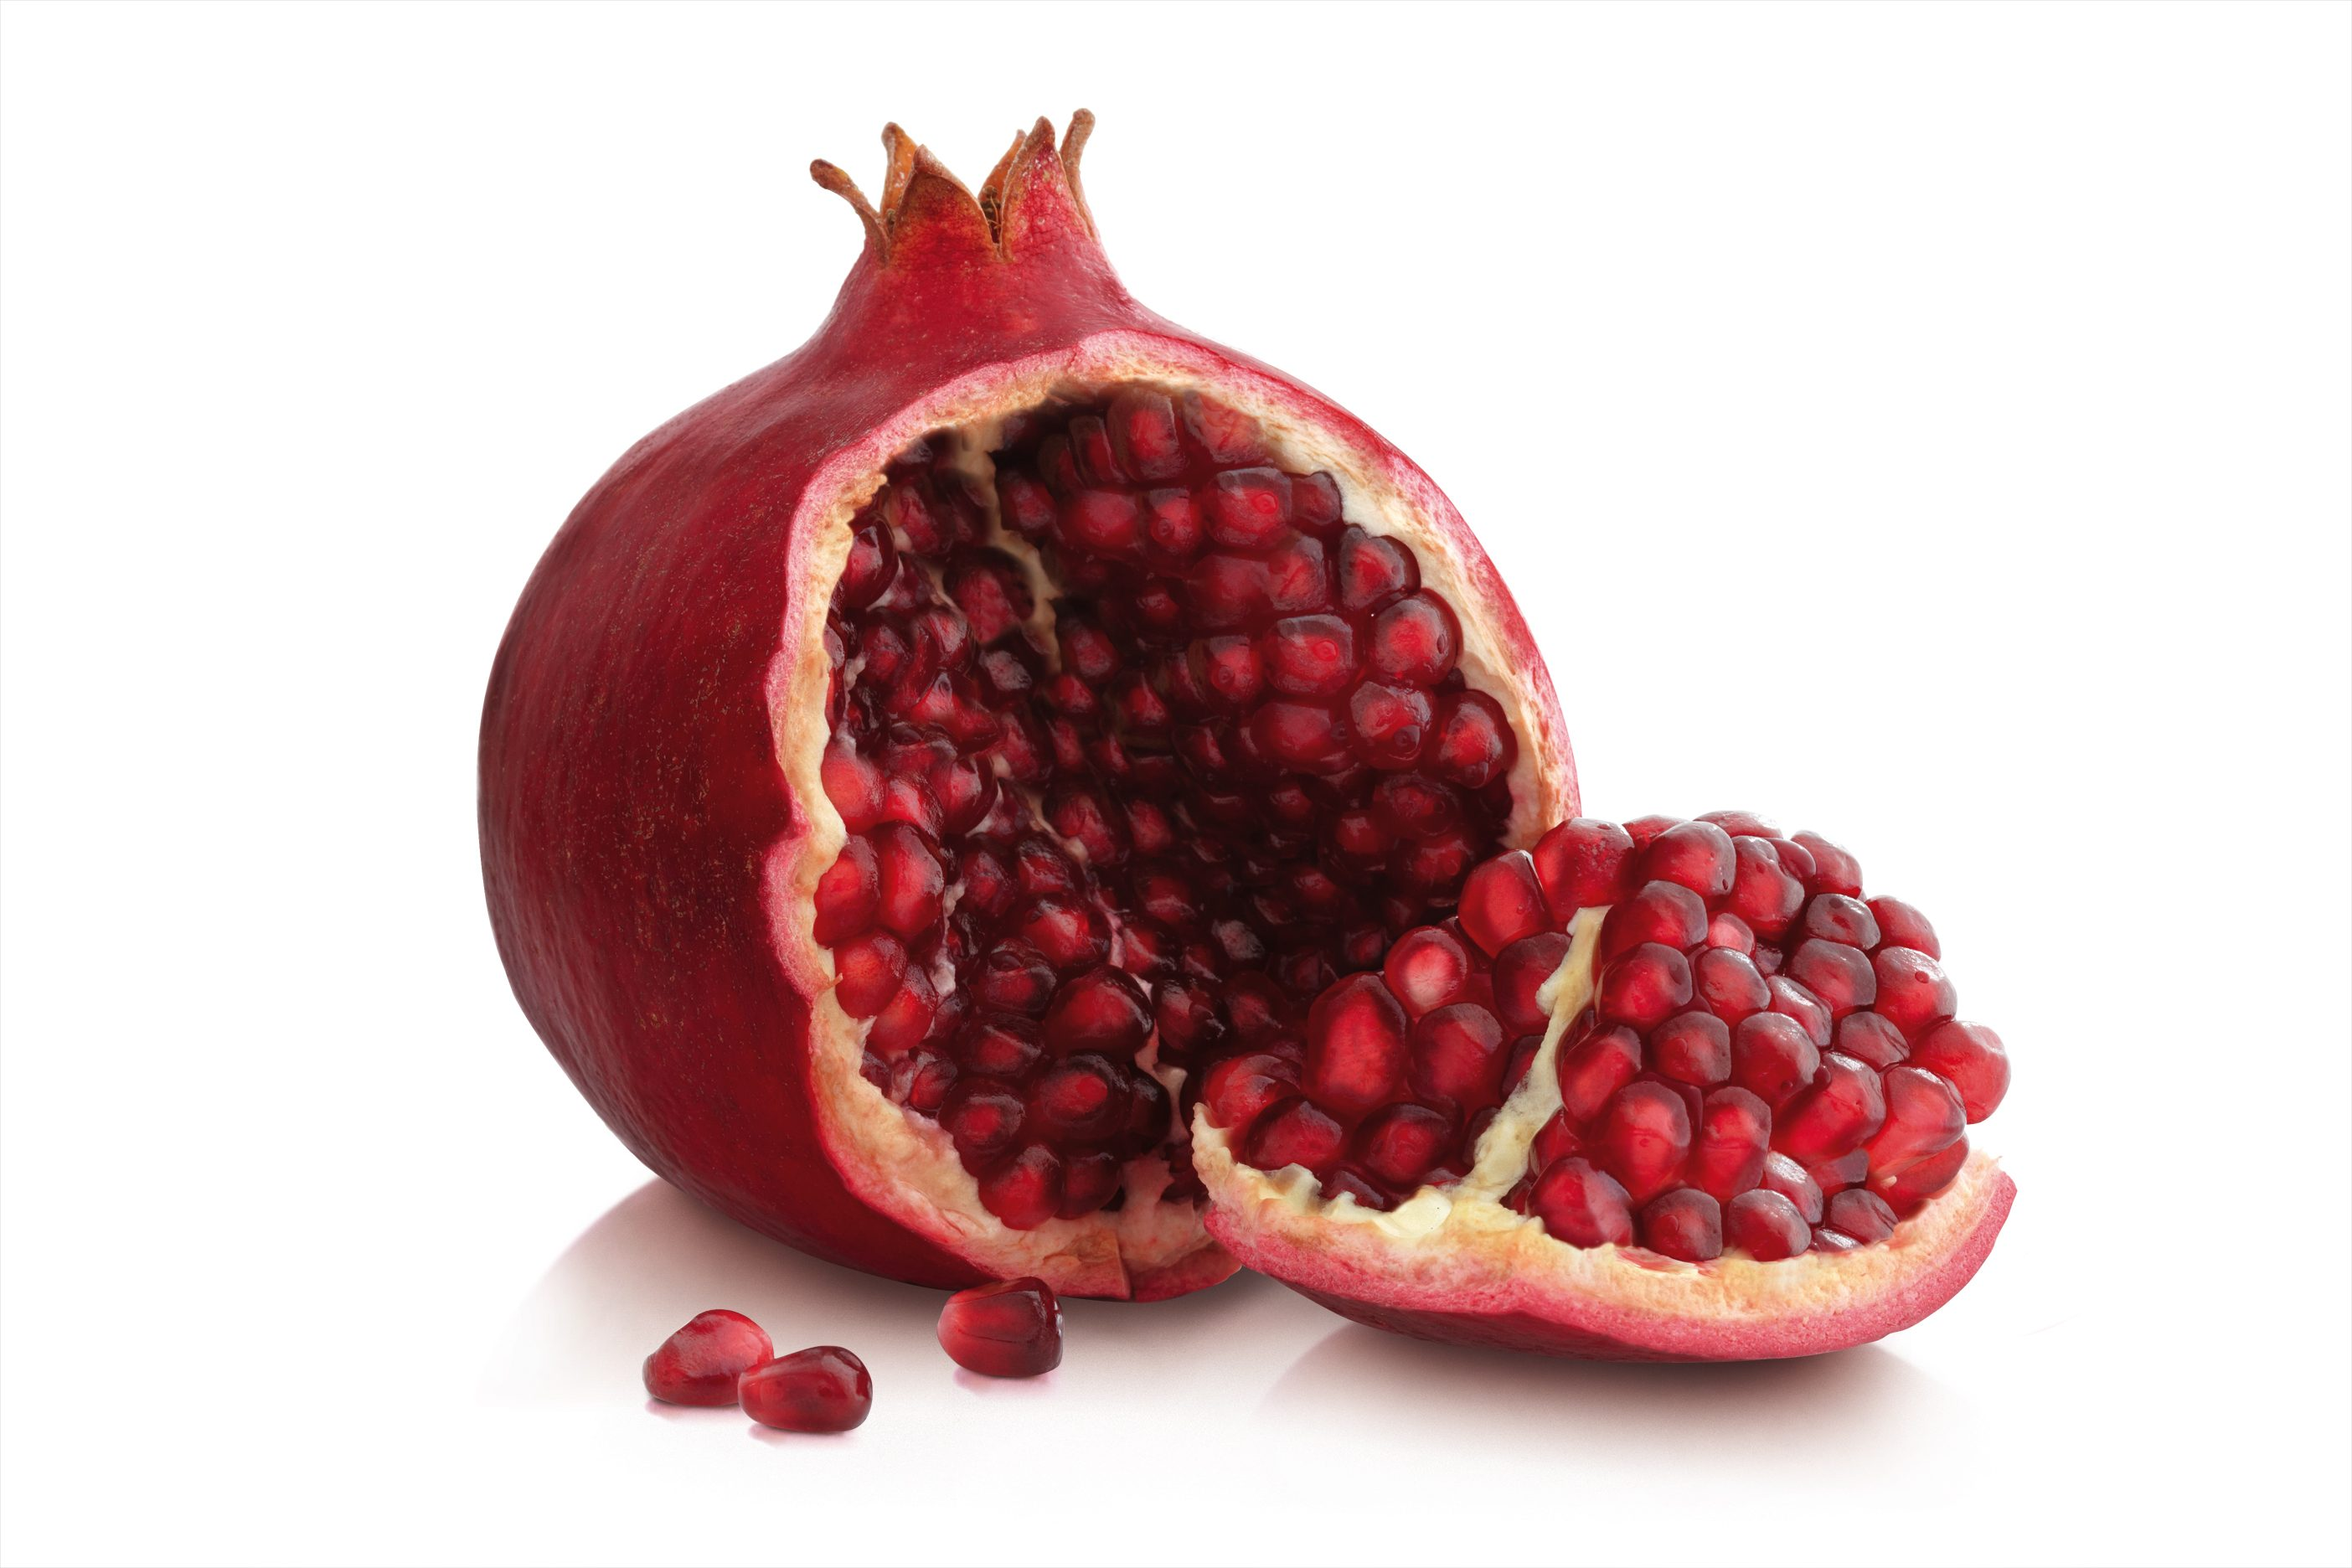 pomegranate_03_300dpi